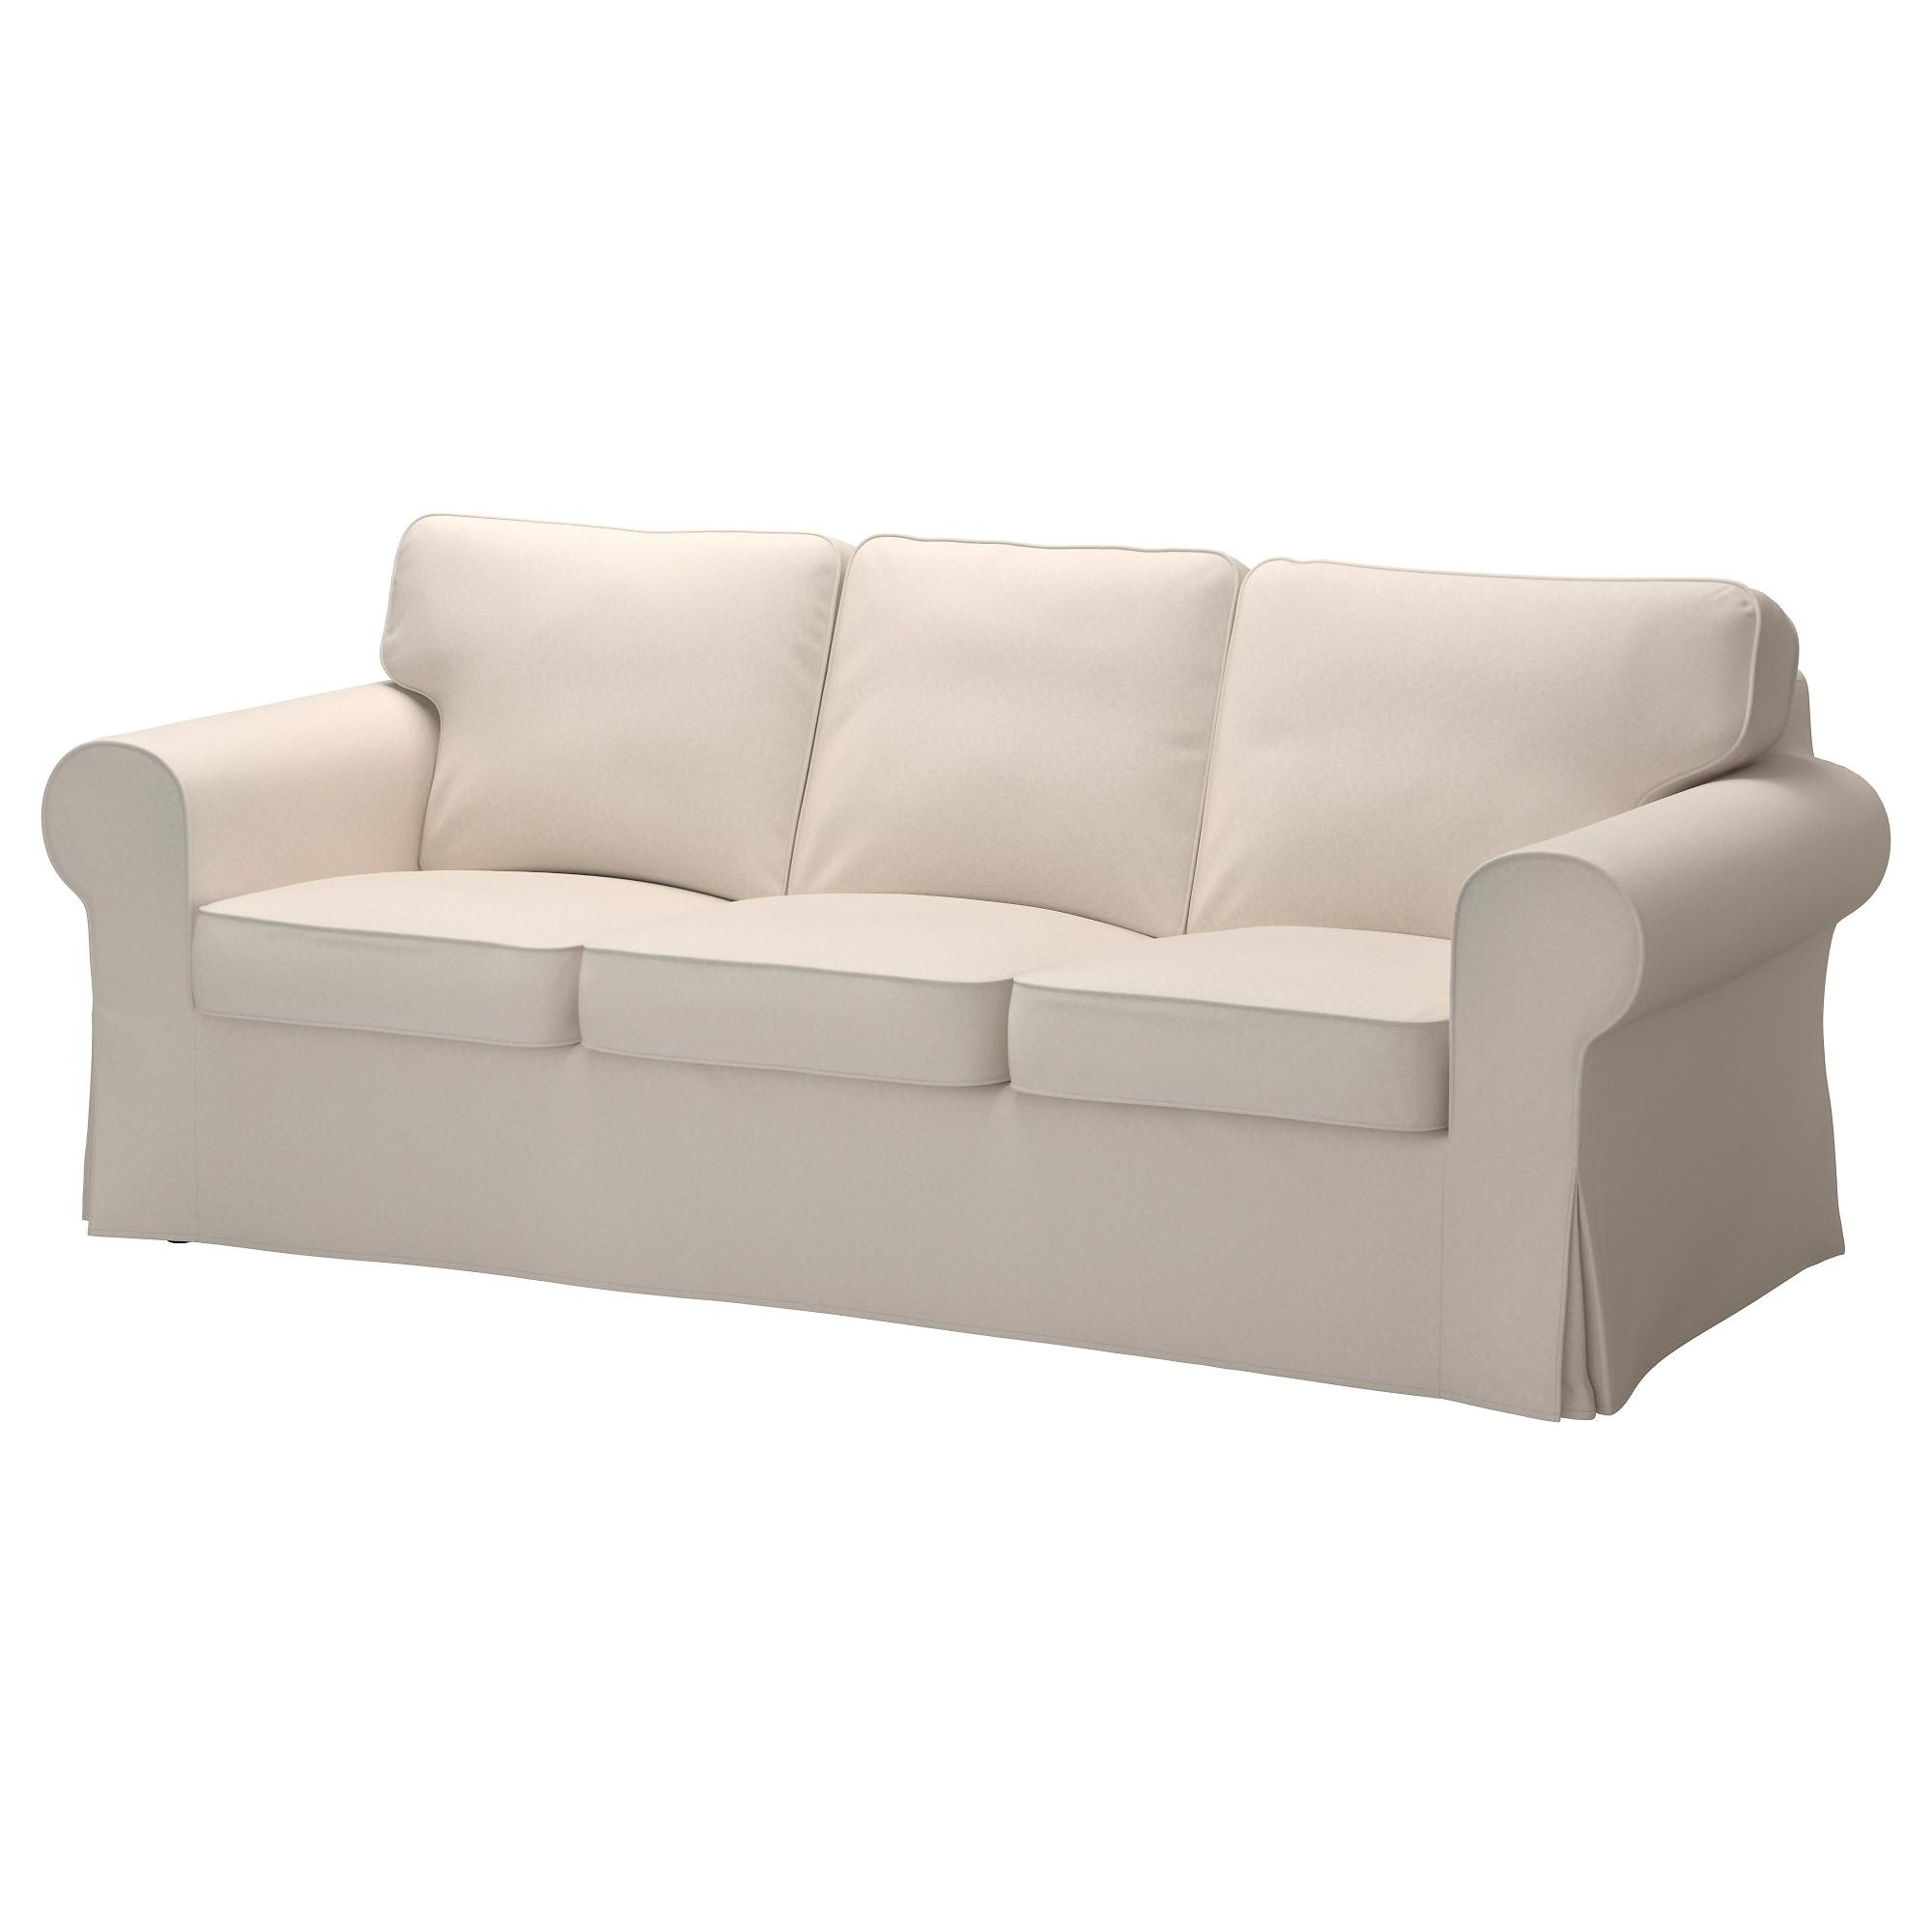 Furniture: Update Your Living Room With Best Sofa Slipcover Design In 3 Piece Sofa Slipcovers (Image 9 of 20)